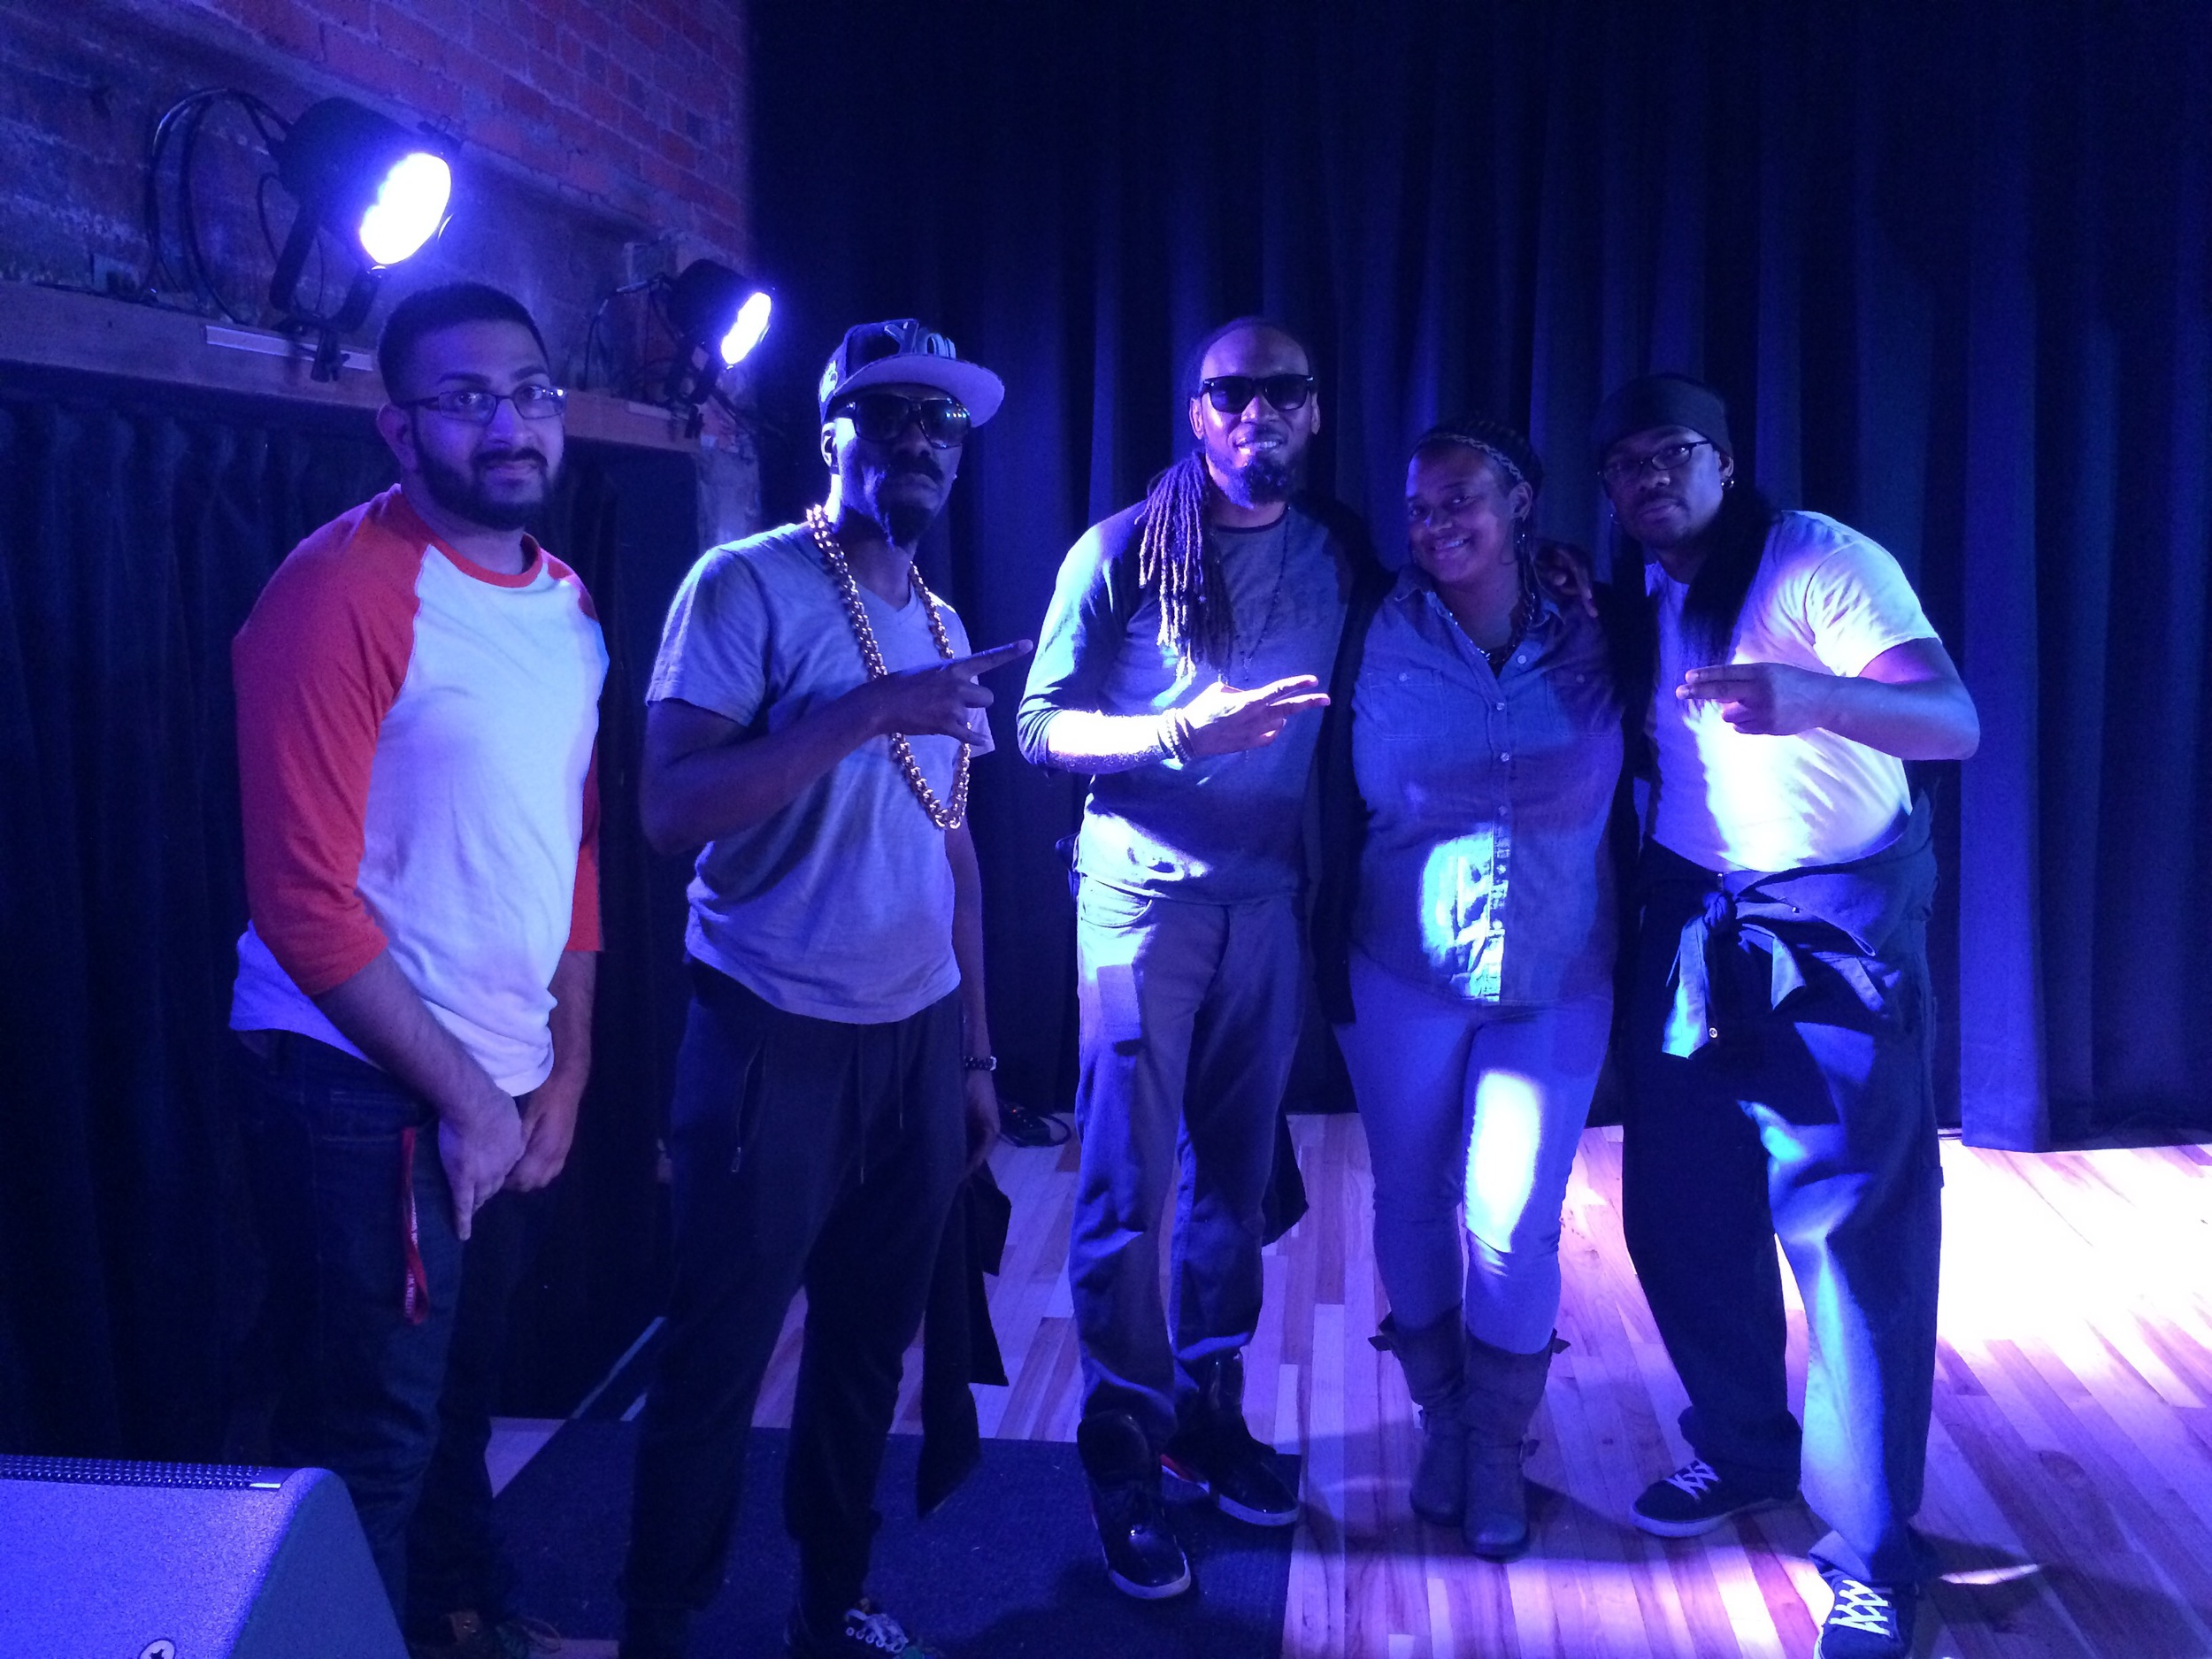 L2R: Bilal, Flynt Flossy, Whatchyamacallit, Me and Yung Humma